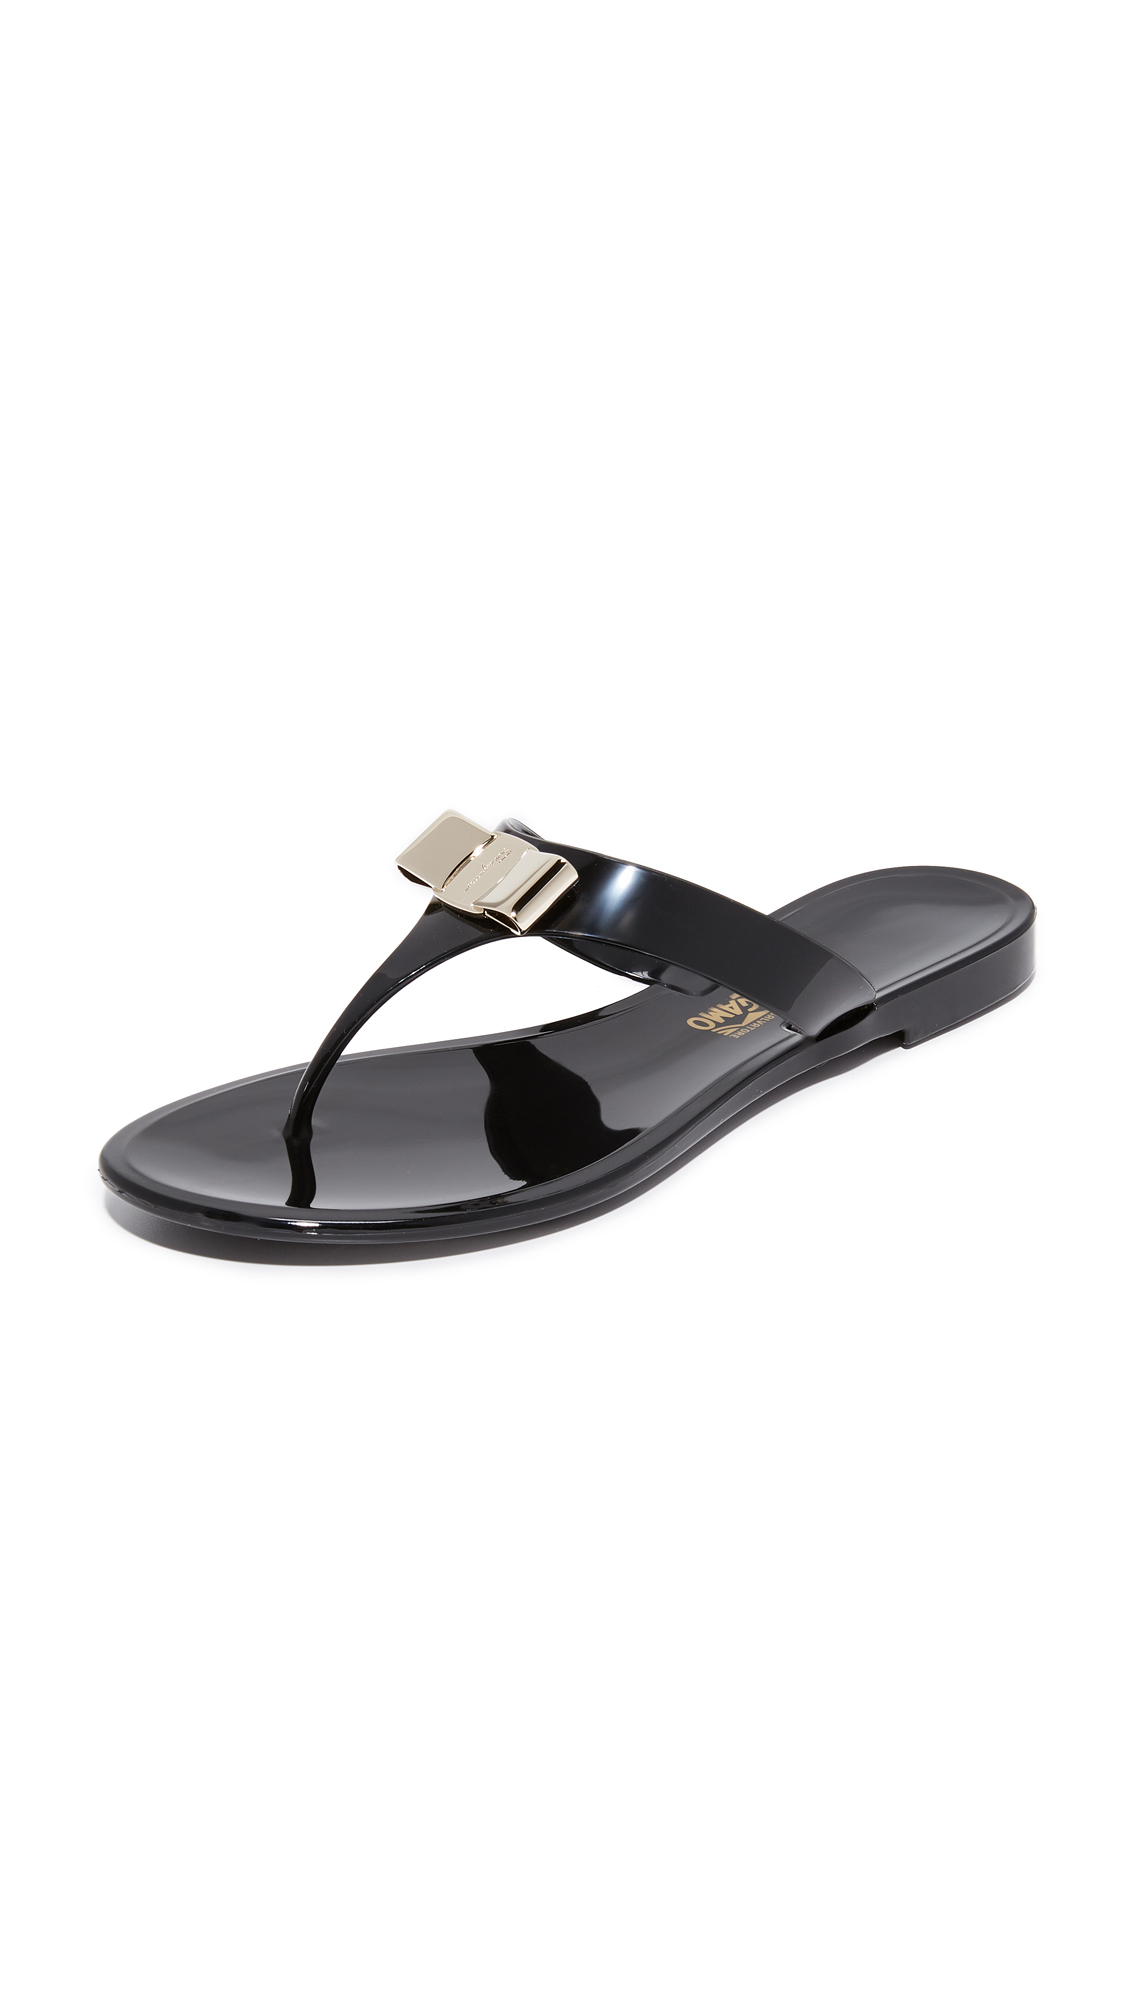 Salvatore Ferragamo Farelia Thong Sandals - Nero